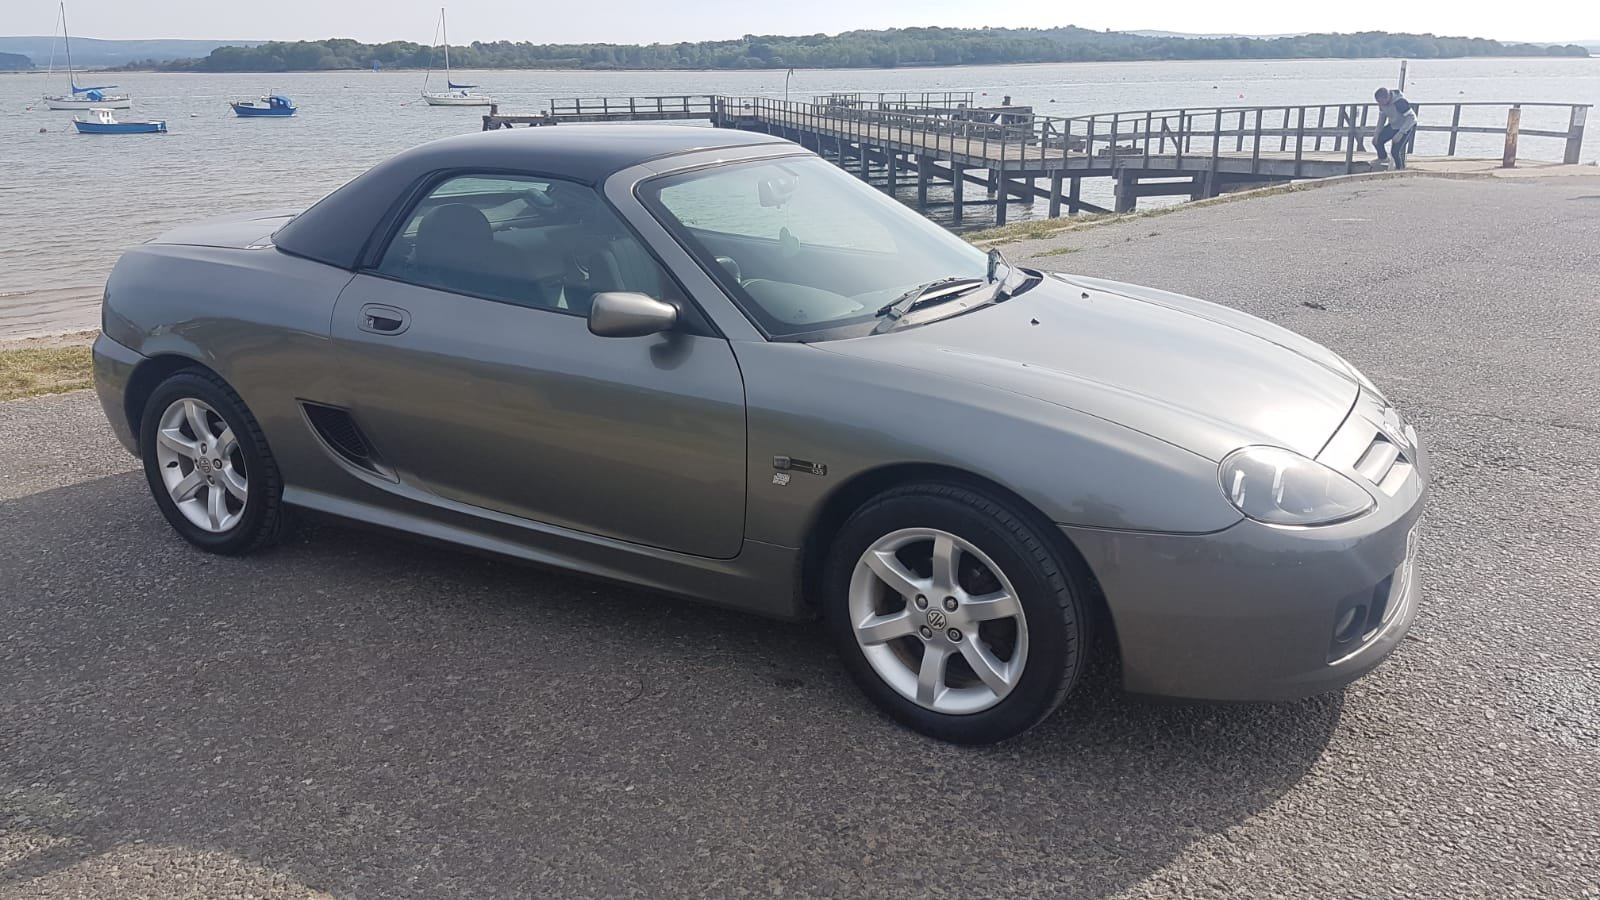 2005 MGTF  new clutch, hard top For Sale (picture 4 of 6)